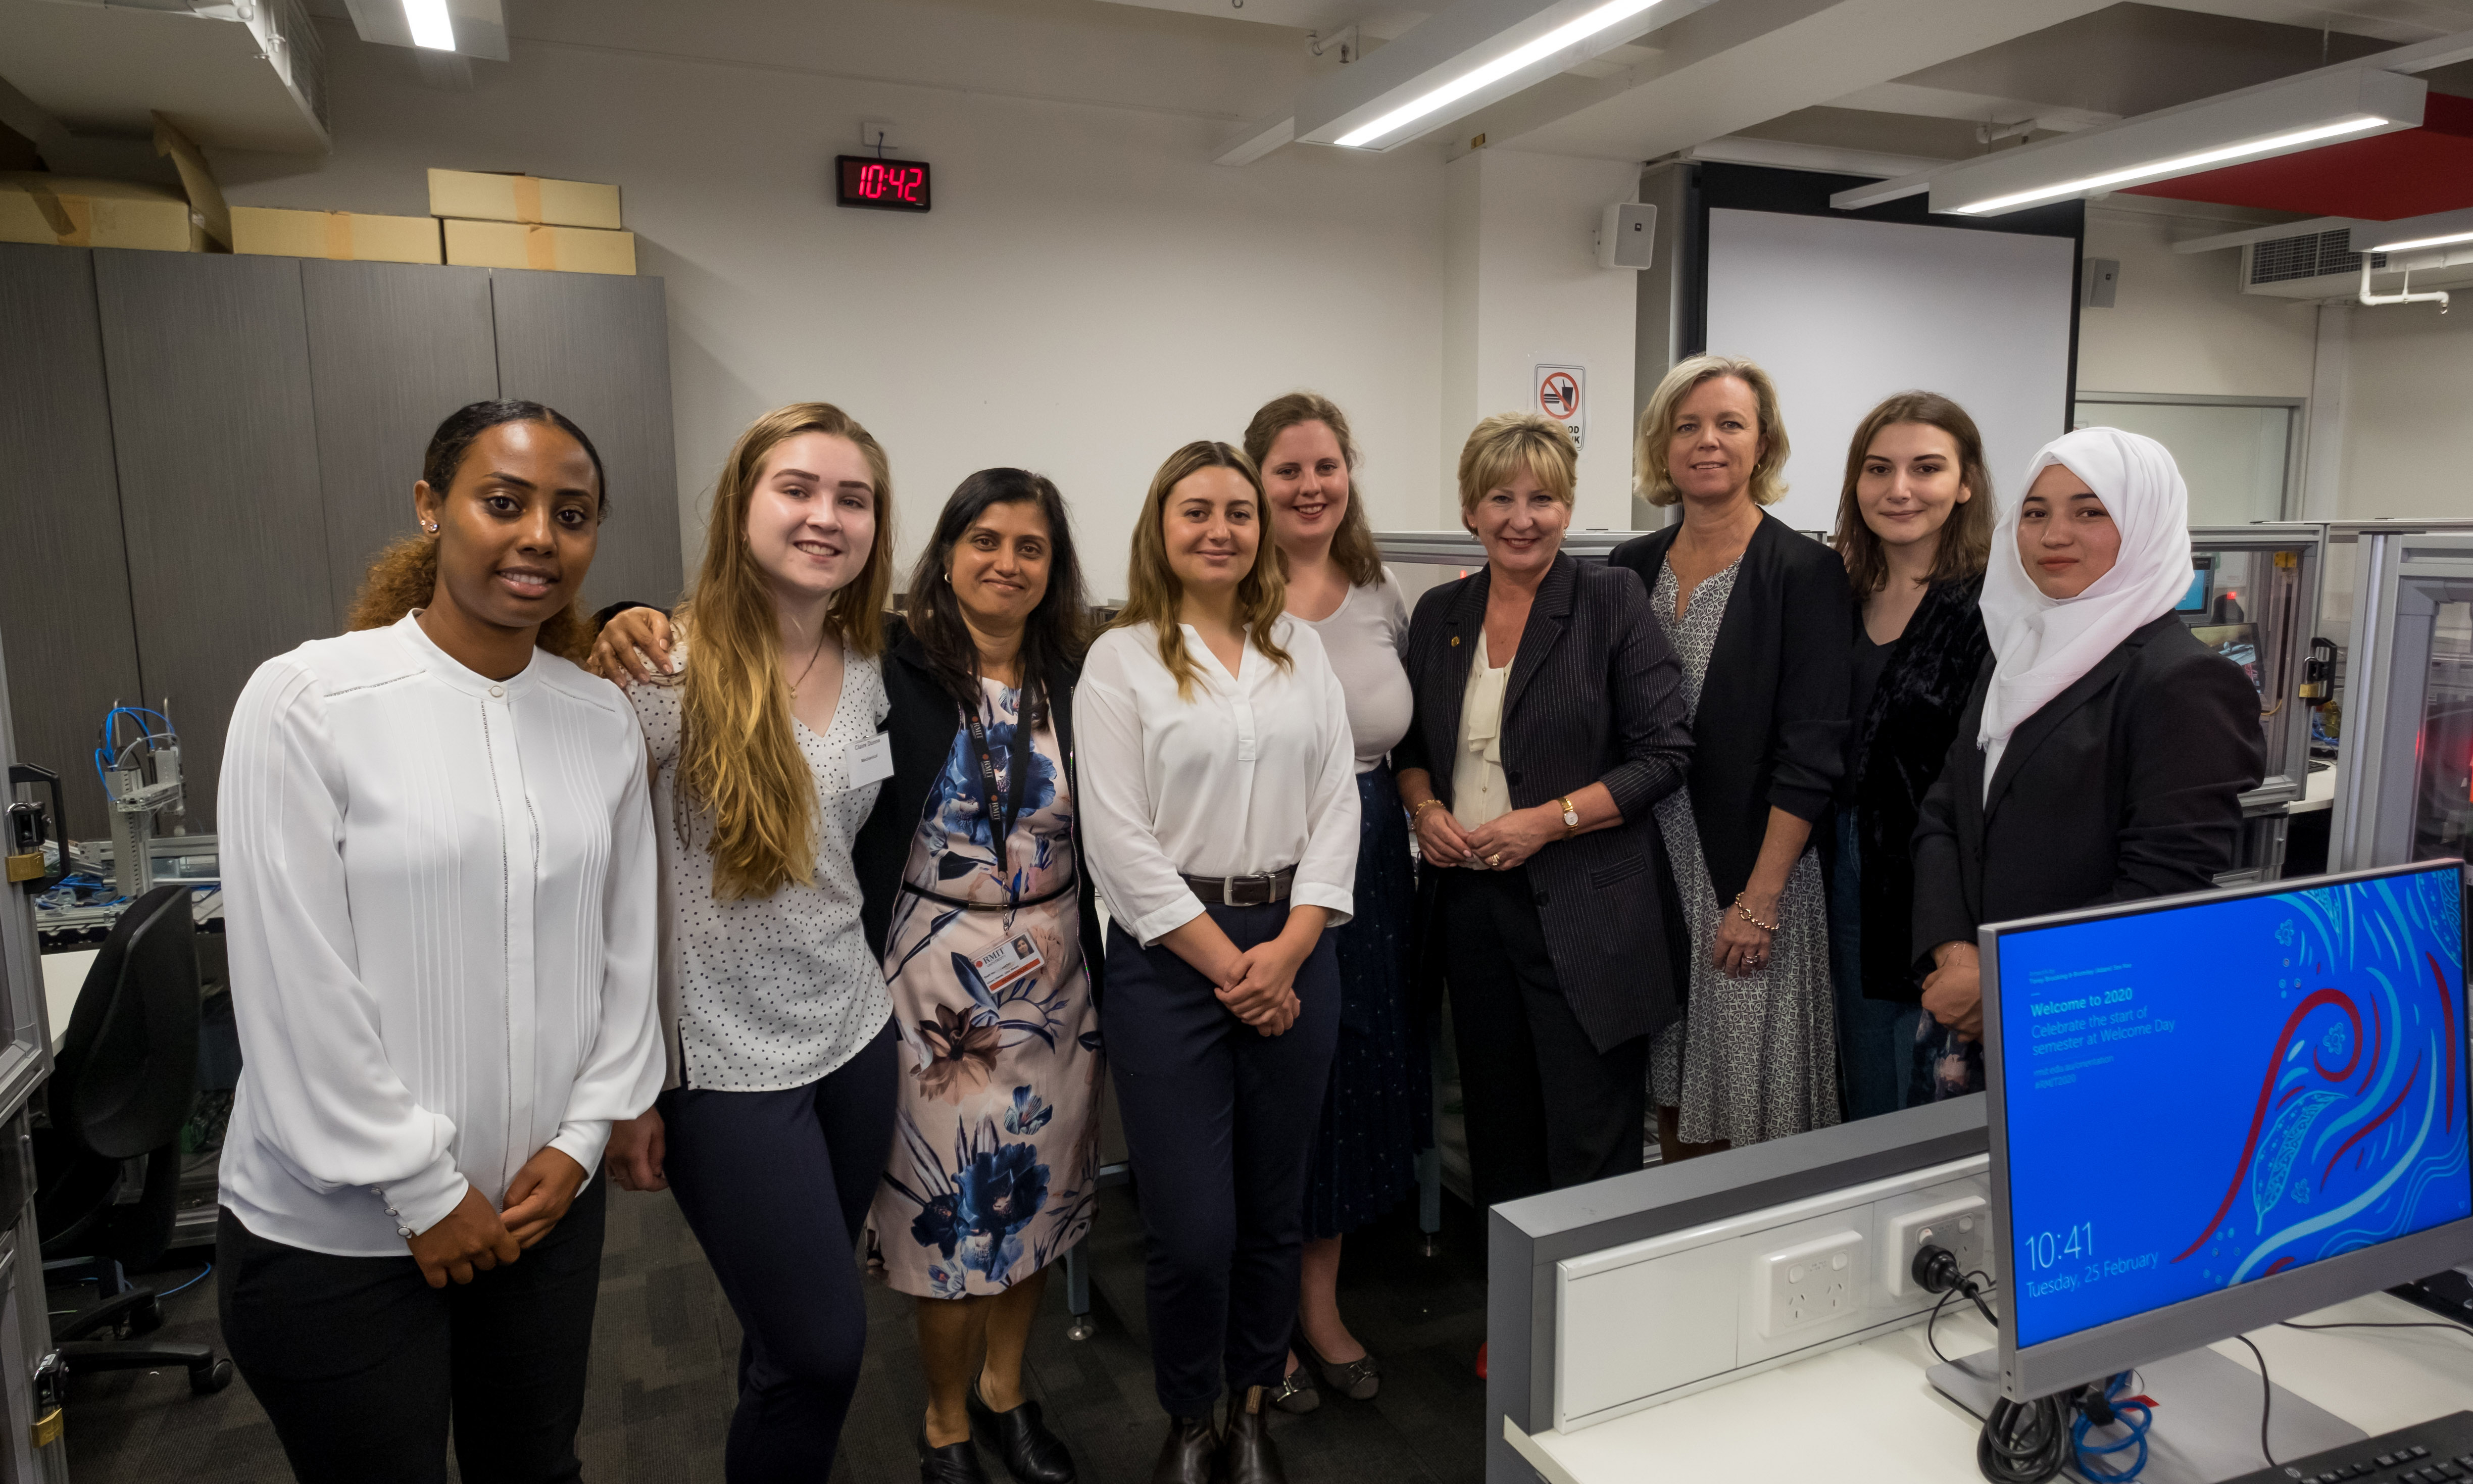 Minister Tierney with students and staff involved in the Women in STEM VE project at RMIT